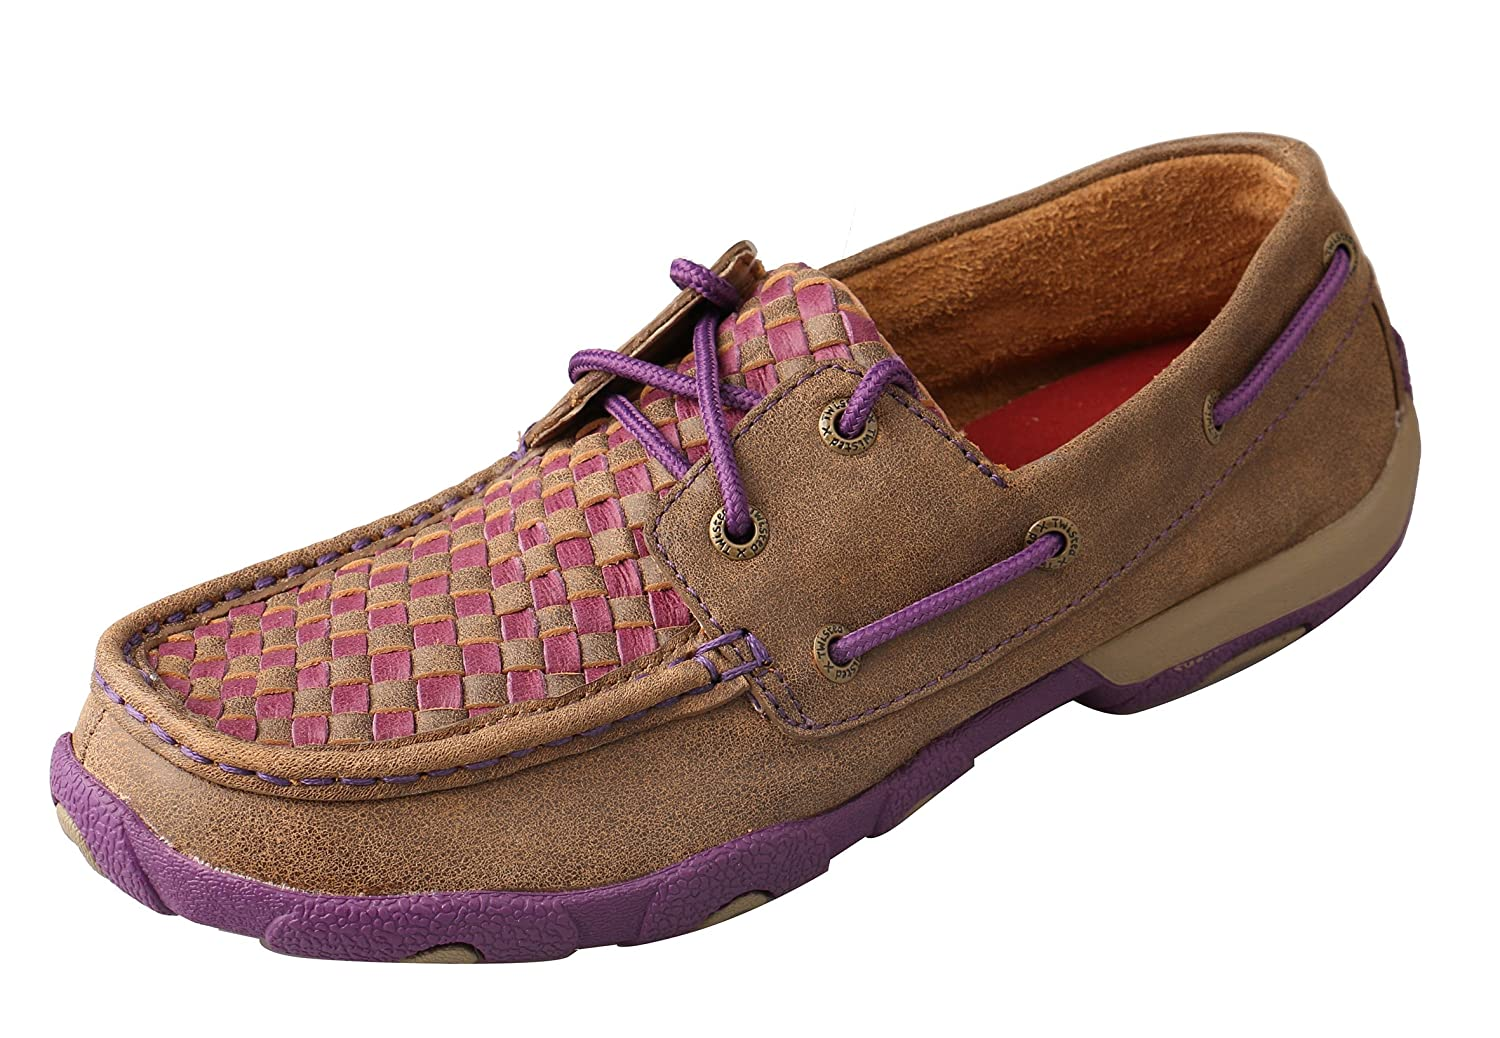 Twisted X Women's Driving Moccasins Bomber/Purple - Retro-Inspired Casual Outdoor Footwear B01IZRUOLE 9.5 B(M) US